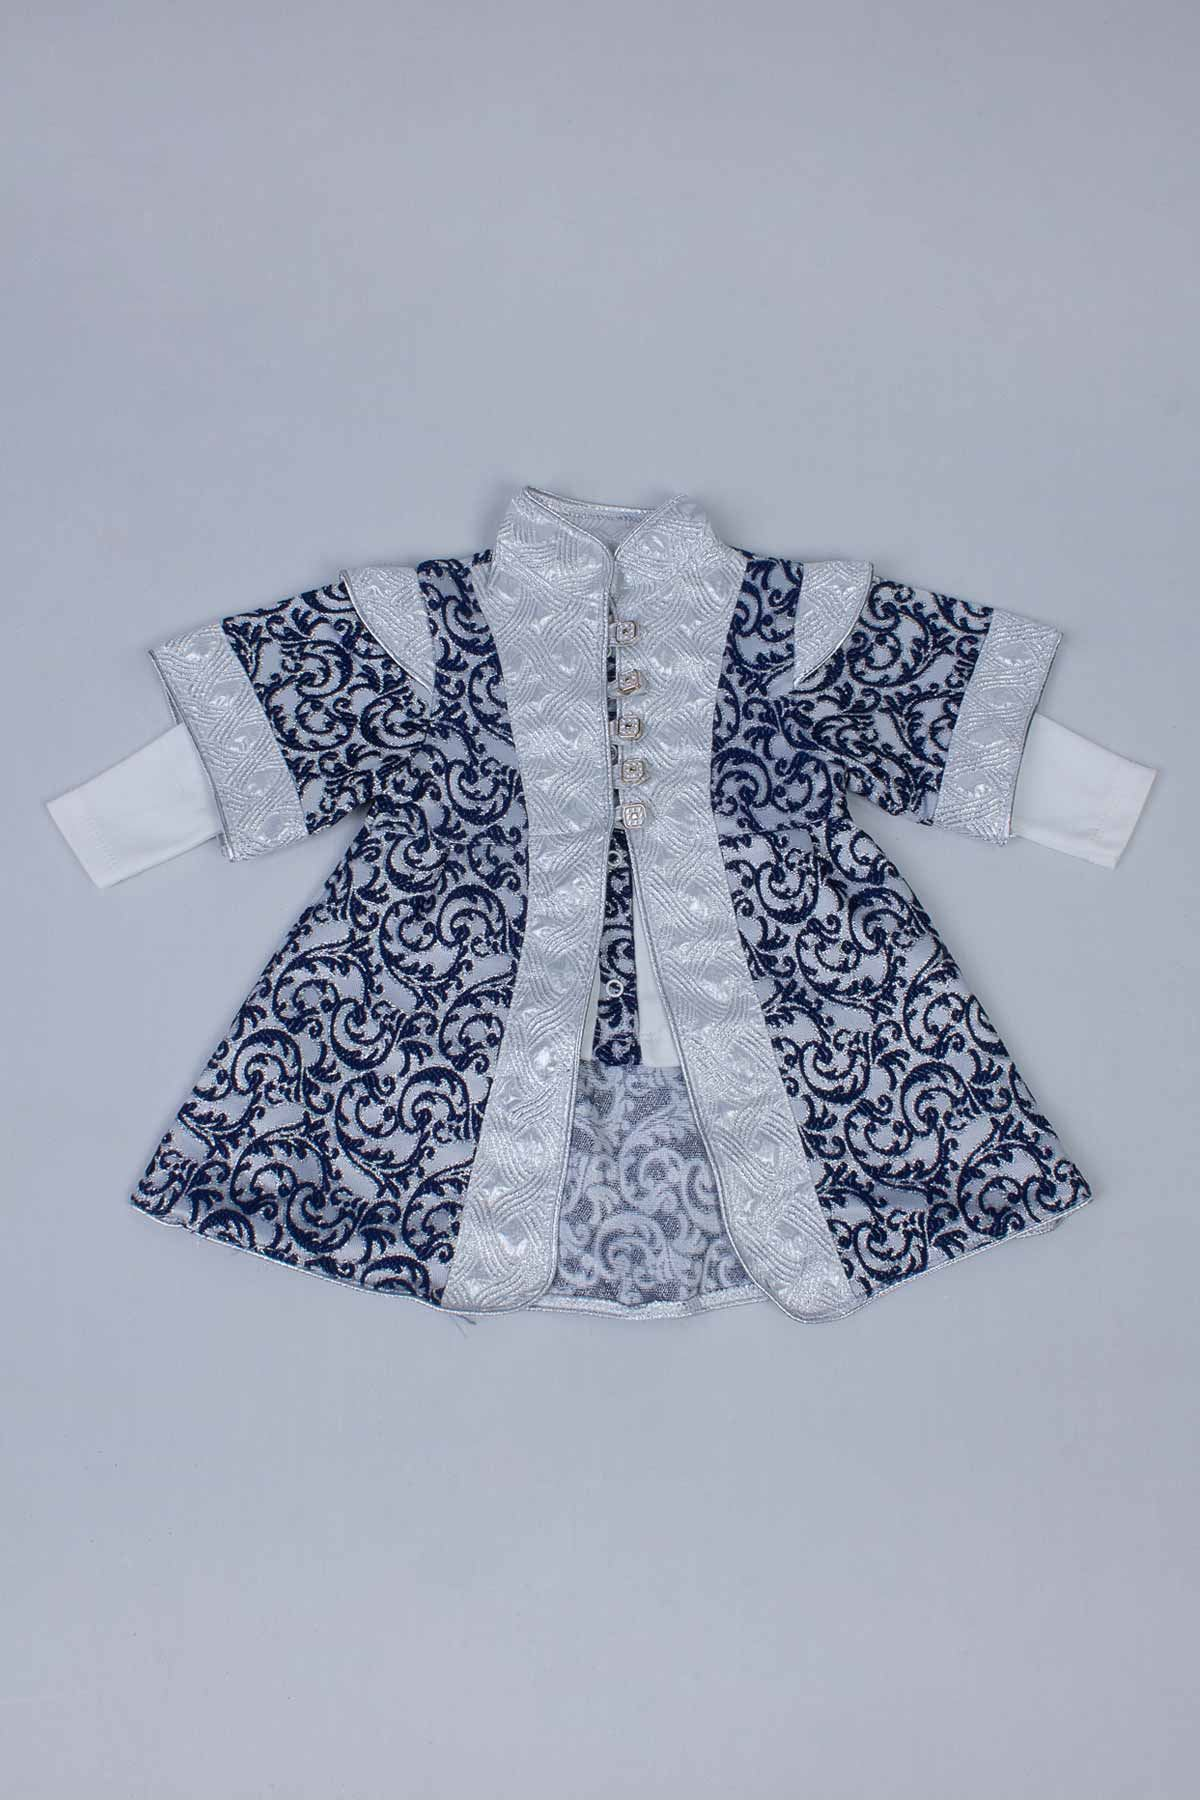 Navy Blue Boy Baby Suit Prince Ottoman Prince Gentleman Formal Dresses Boys Babies 5 Piece Set Male Clothing Special Occasions Outfit